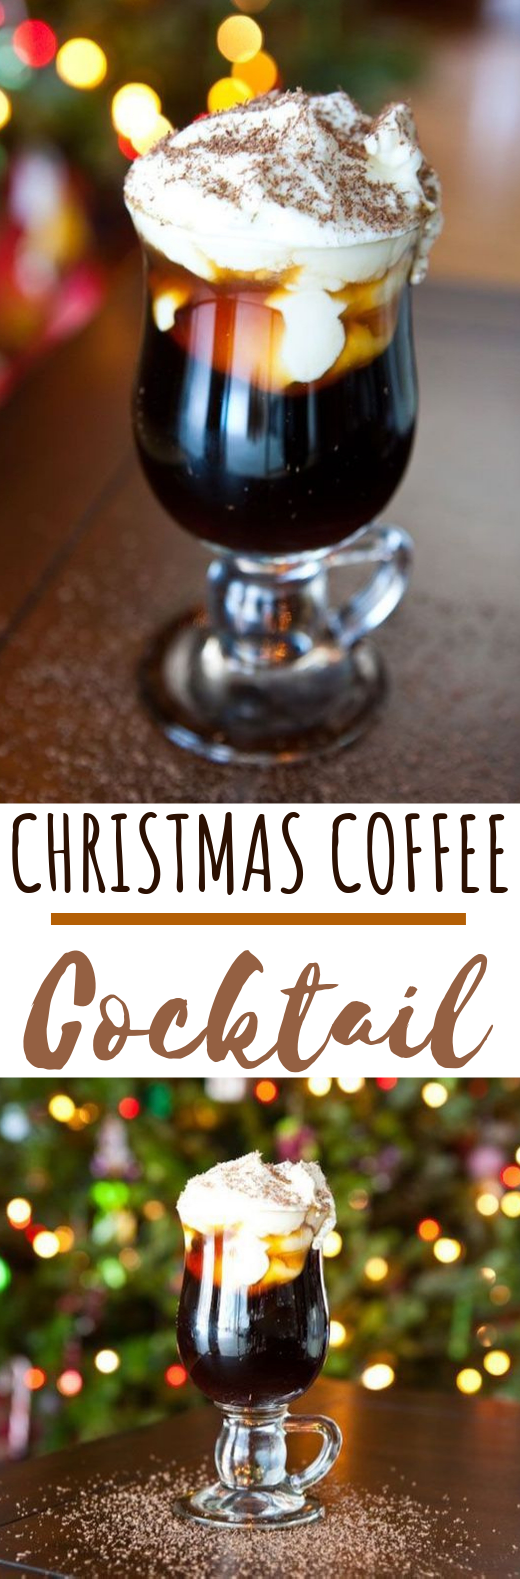 Christmas Coffee Cocktail #drinks #cocktails